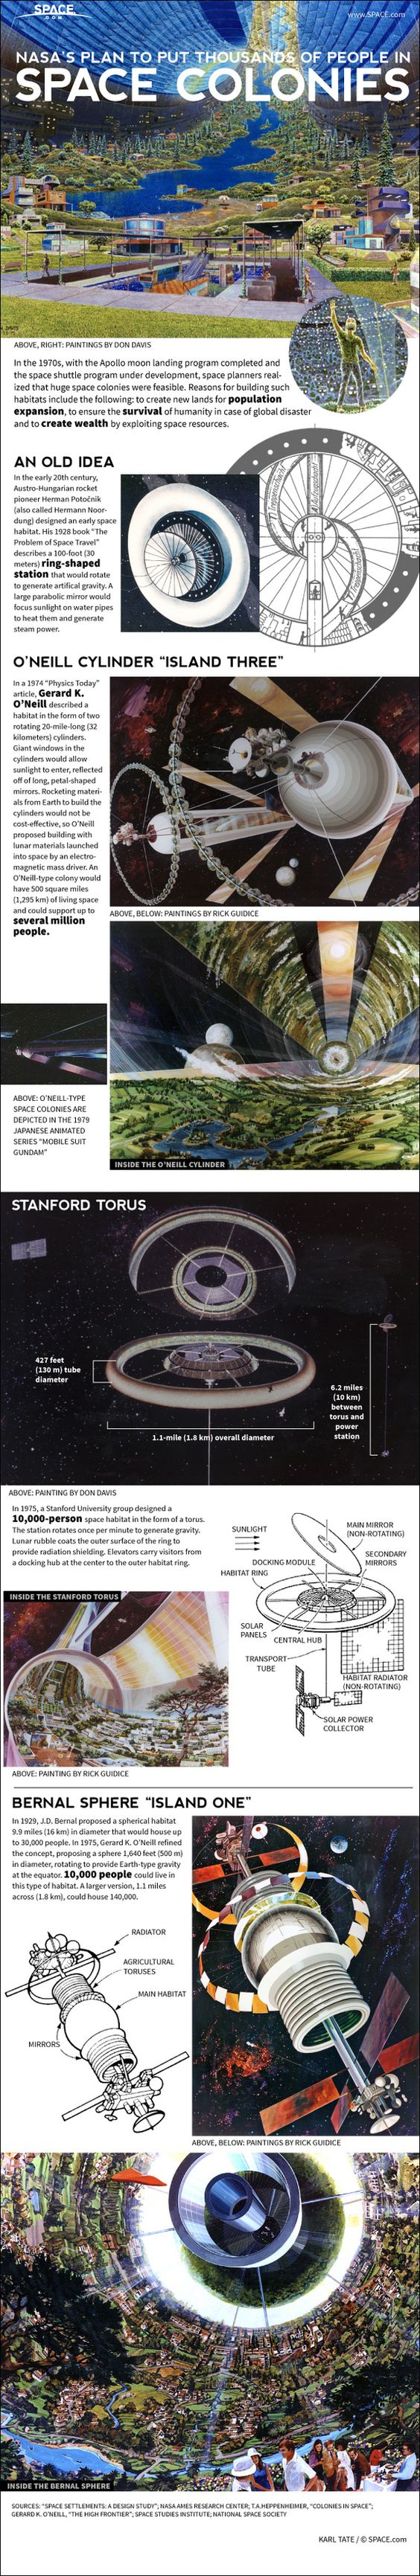 Find out about NASA's ambitious space colony plans in this SPACE.com infographic.